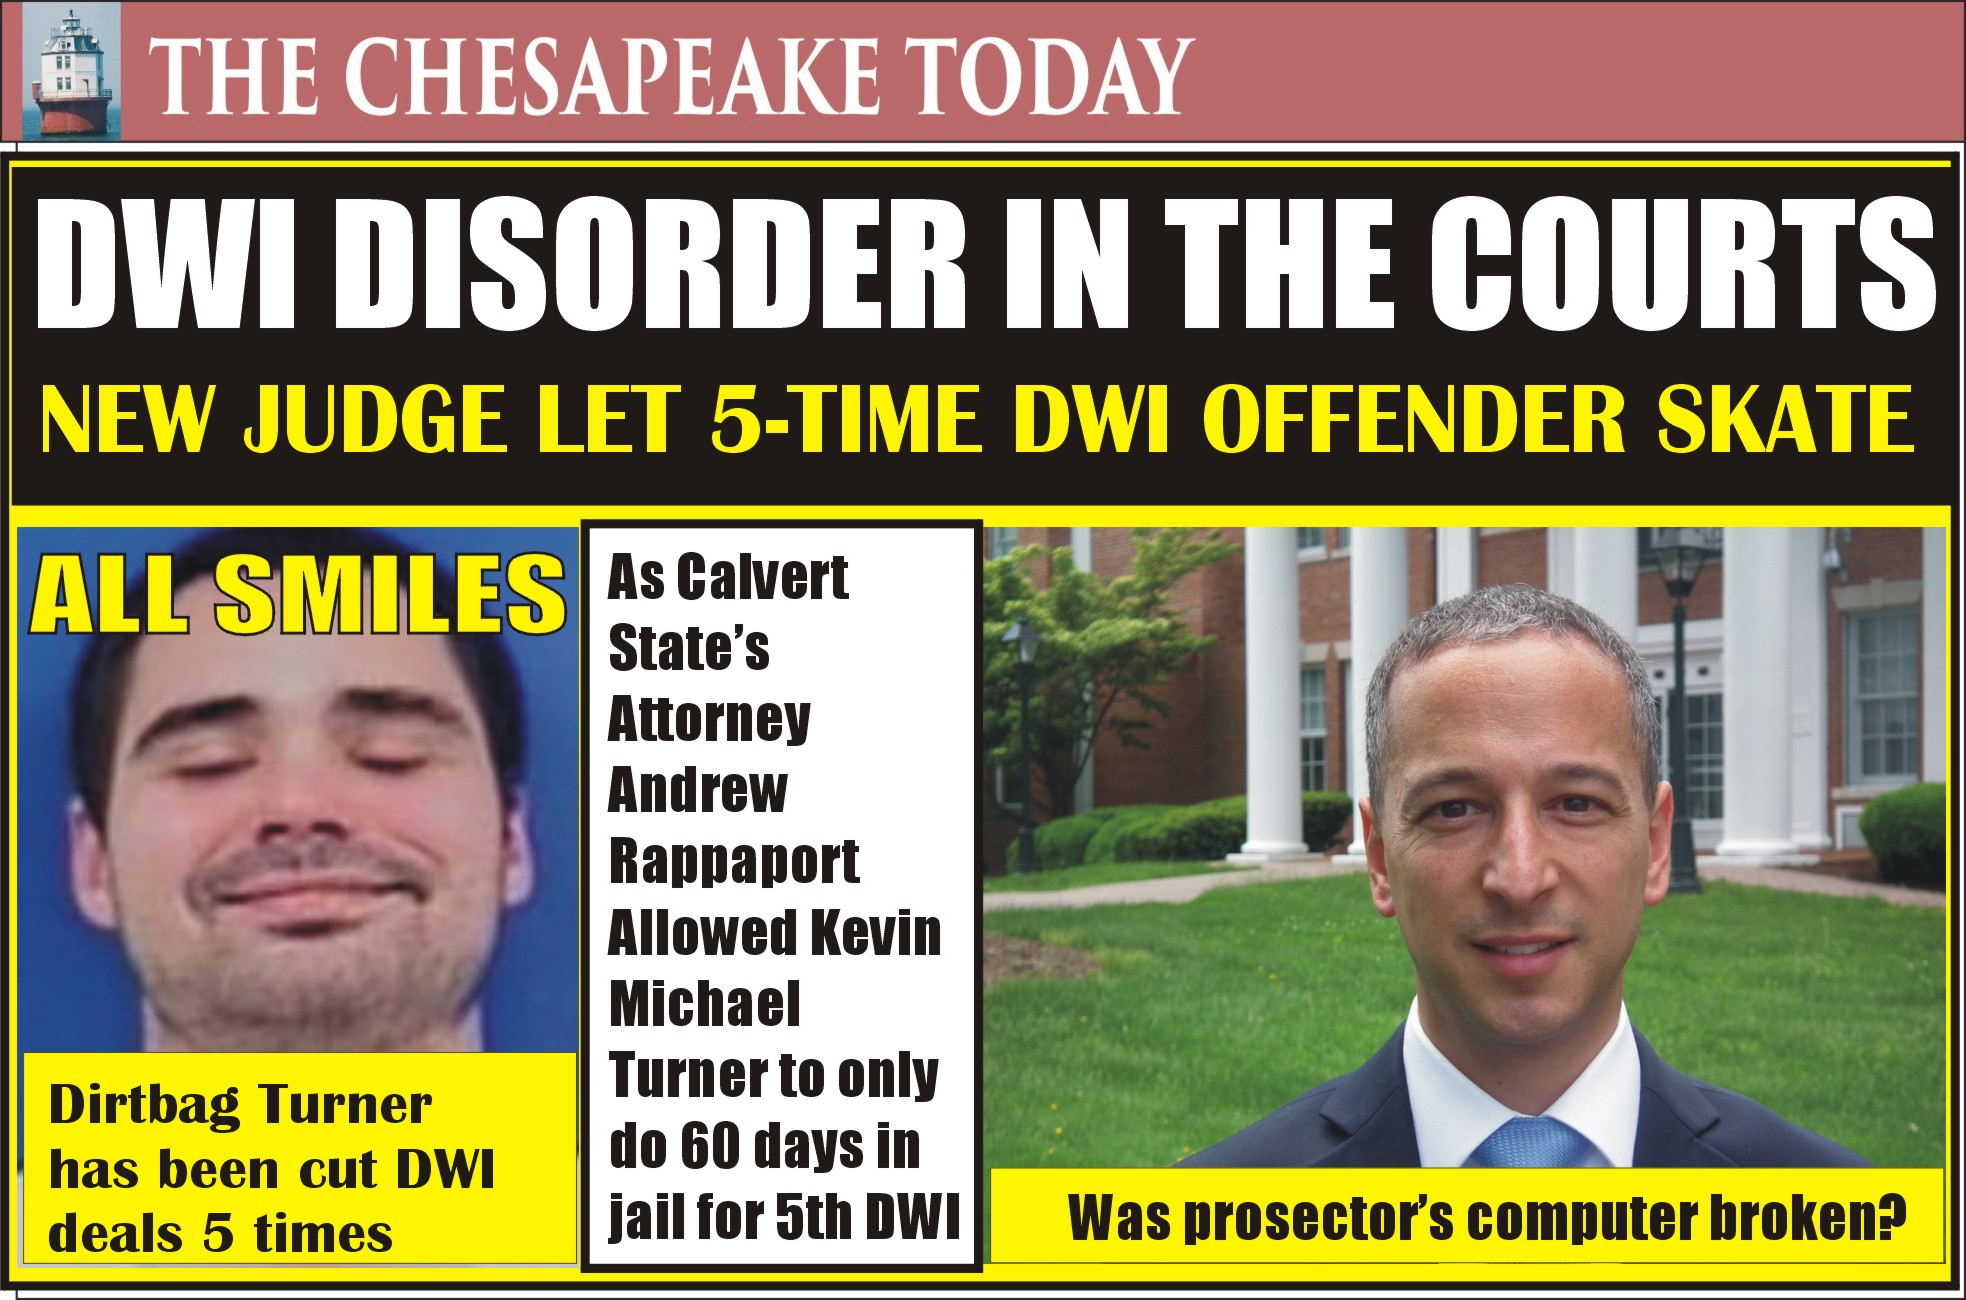 DWI HIT PARADE: Conviction of five-time DUI driver Kevin Michael Turner yields shocking plea deal by Calvert States Attorney Andrew Rappaport six months before his appointment as Judge